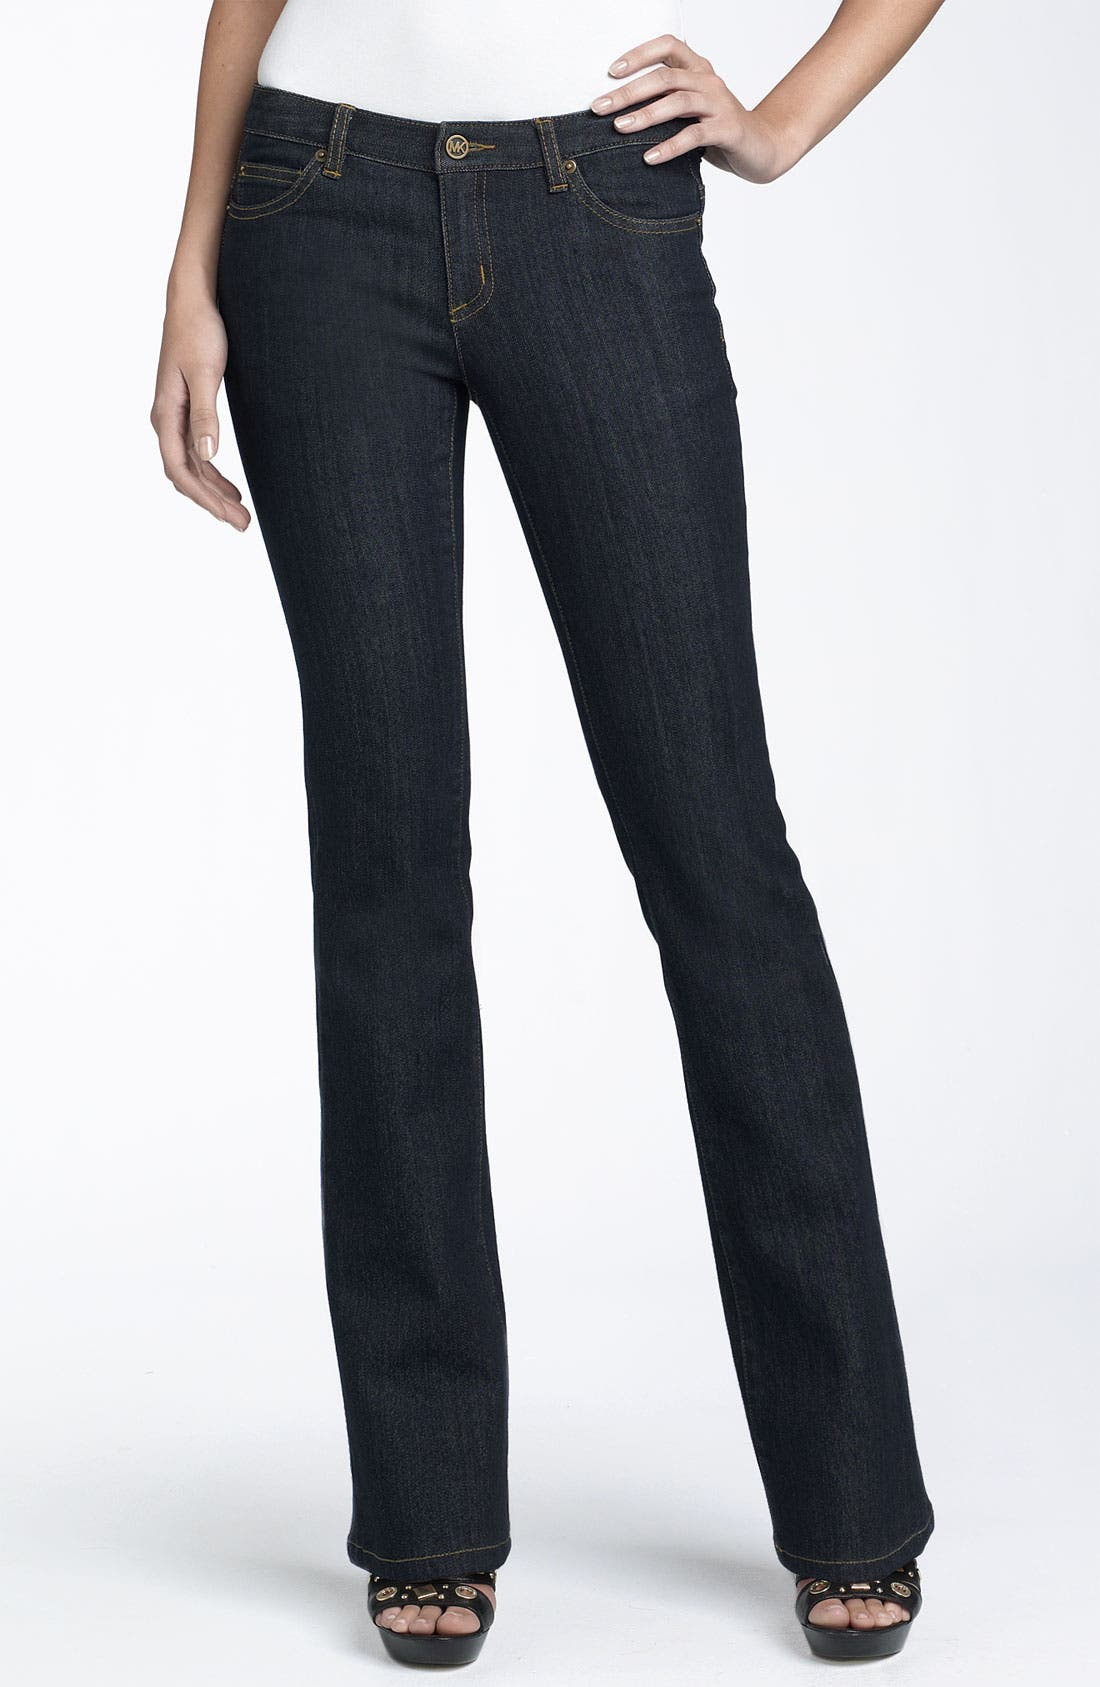 Alternate Image 1 Selected - MICHAEL Michael Kors 'Sausalito' Stretch Demin Flare Jeans (Petite)